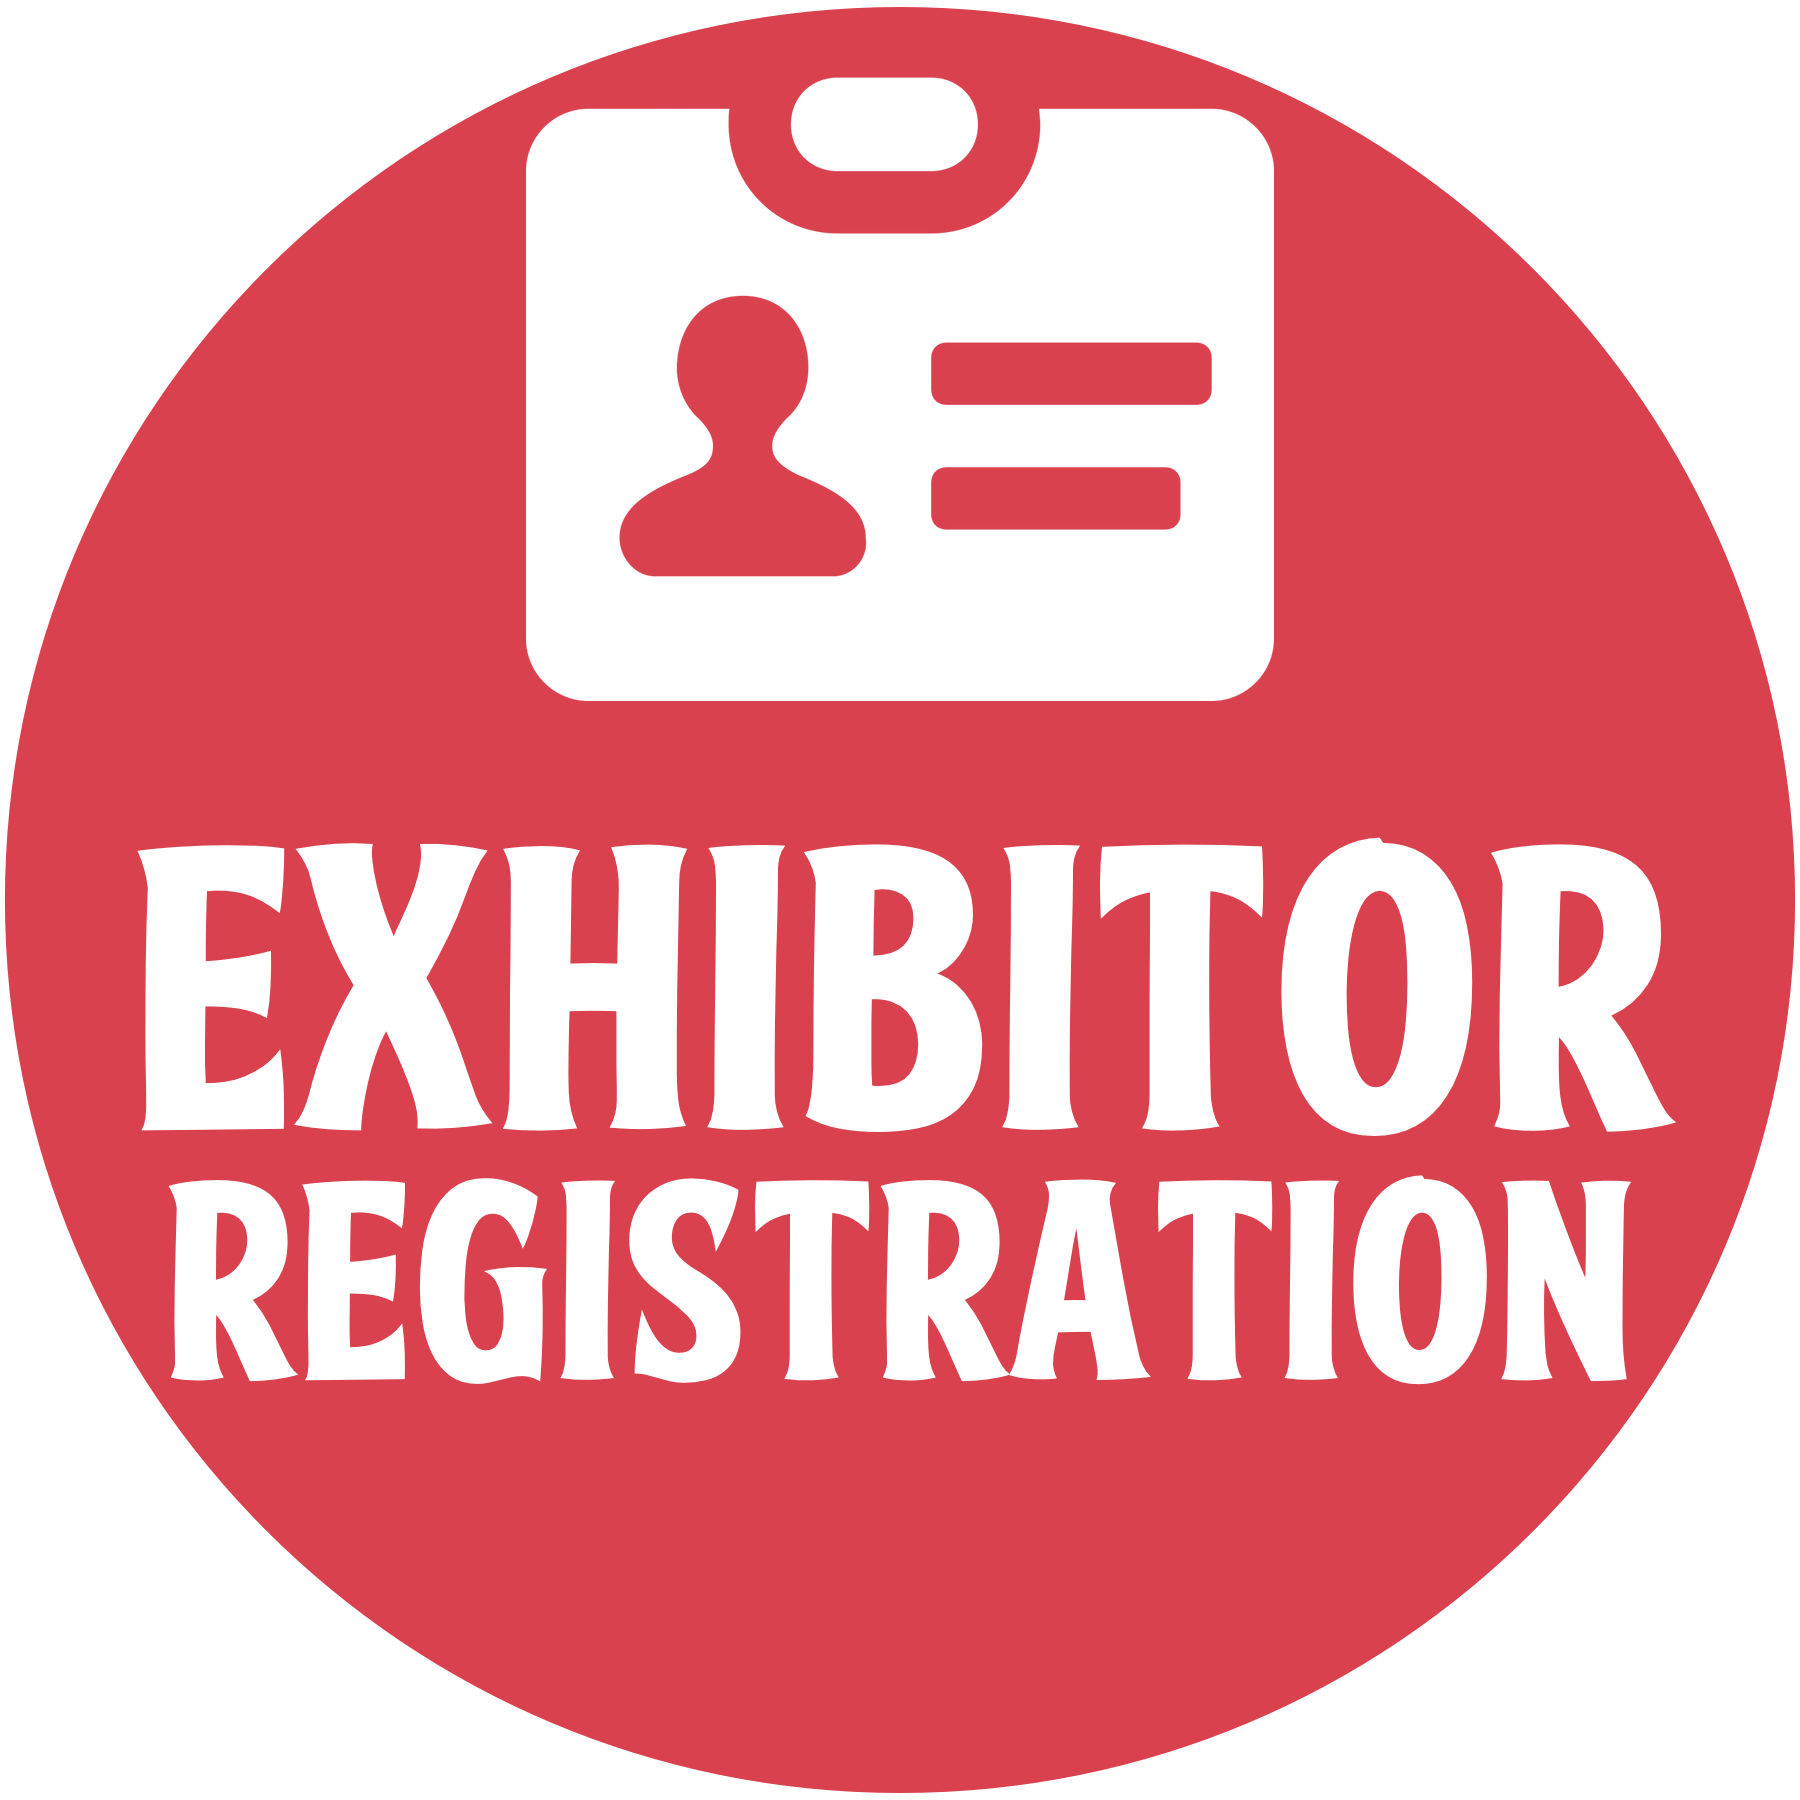 AORE Conference 2020 - Exhibitor Registration